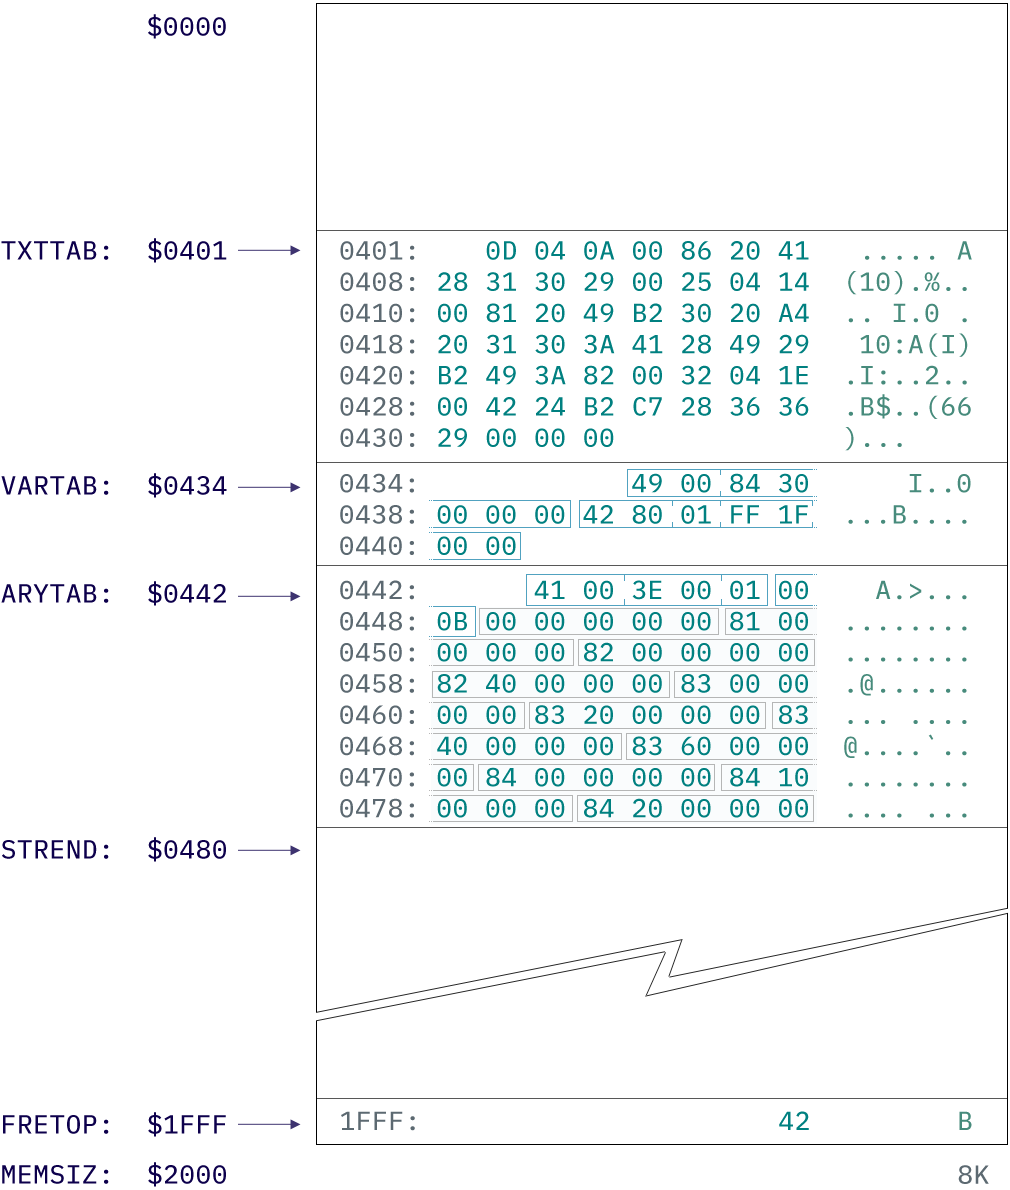 Memory map of a PET 2001 after execution of a simple program